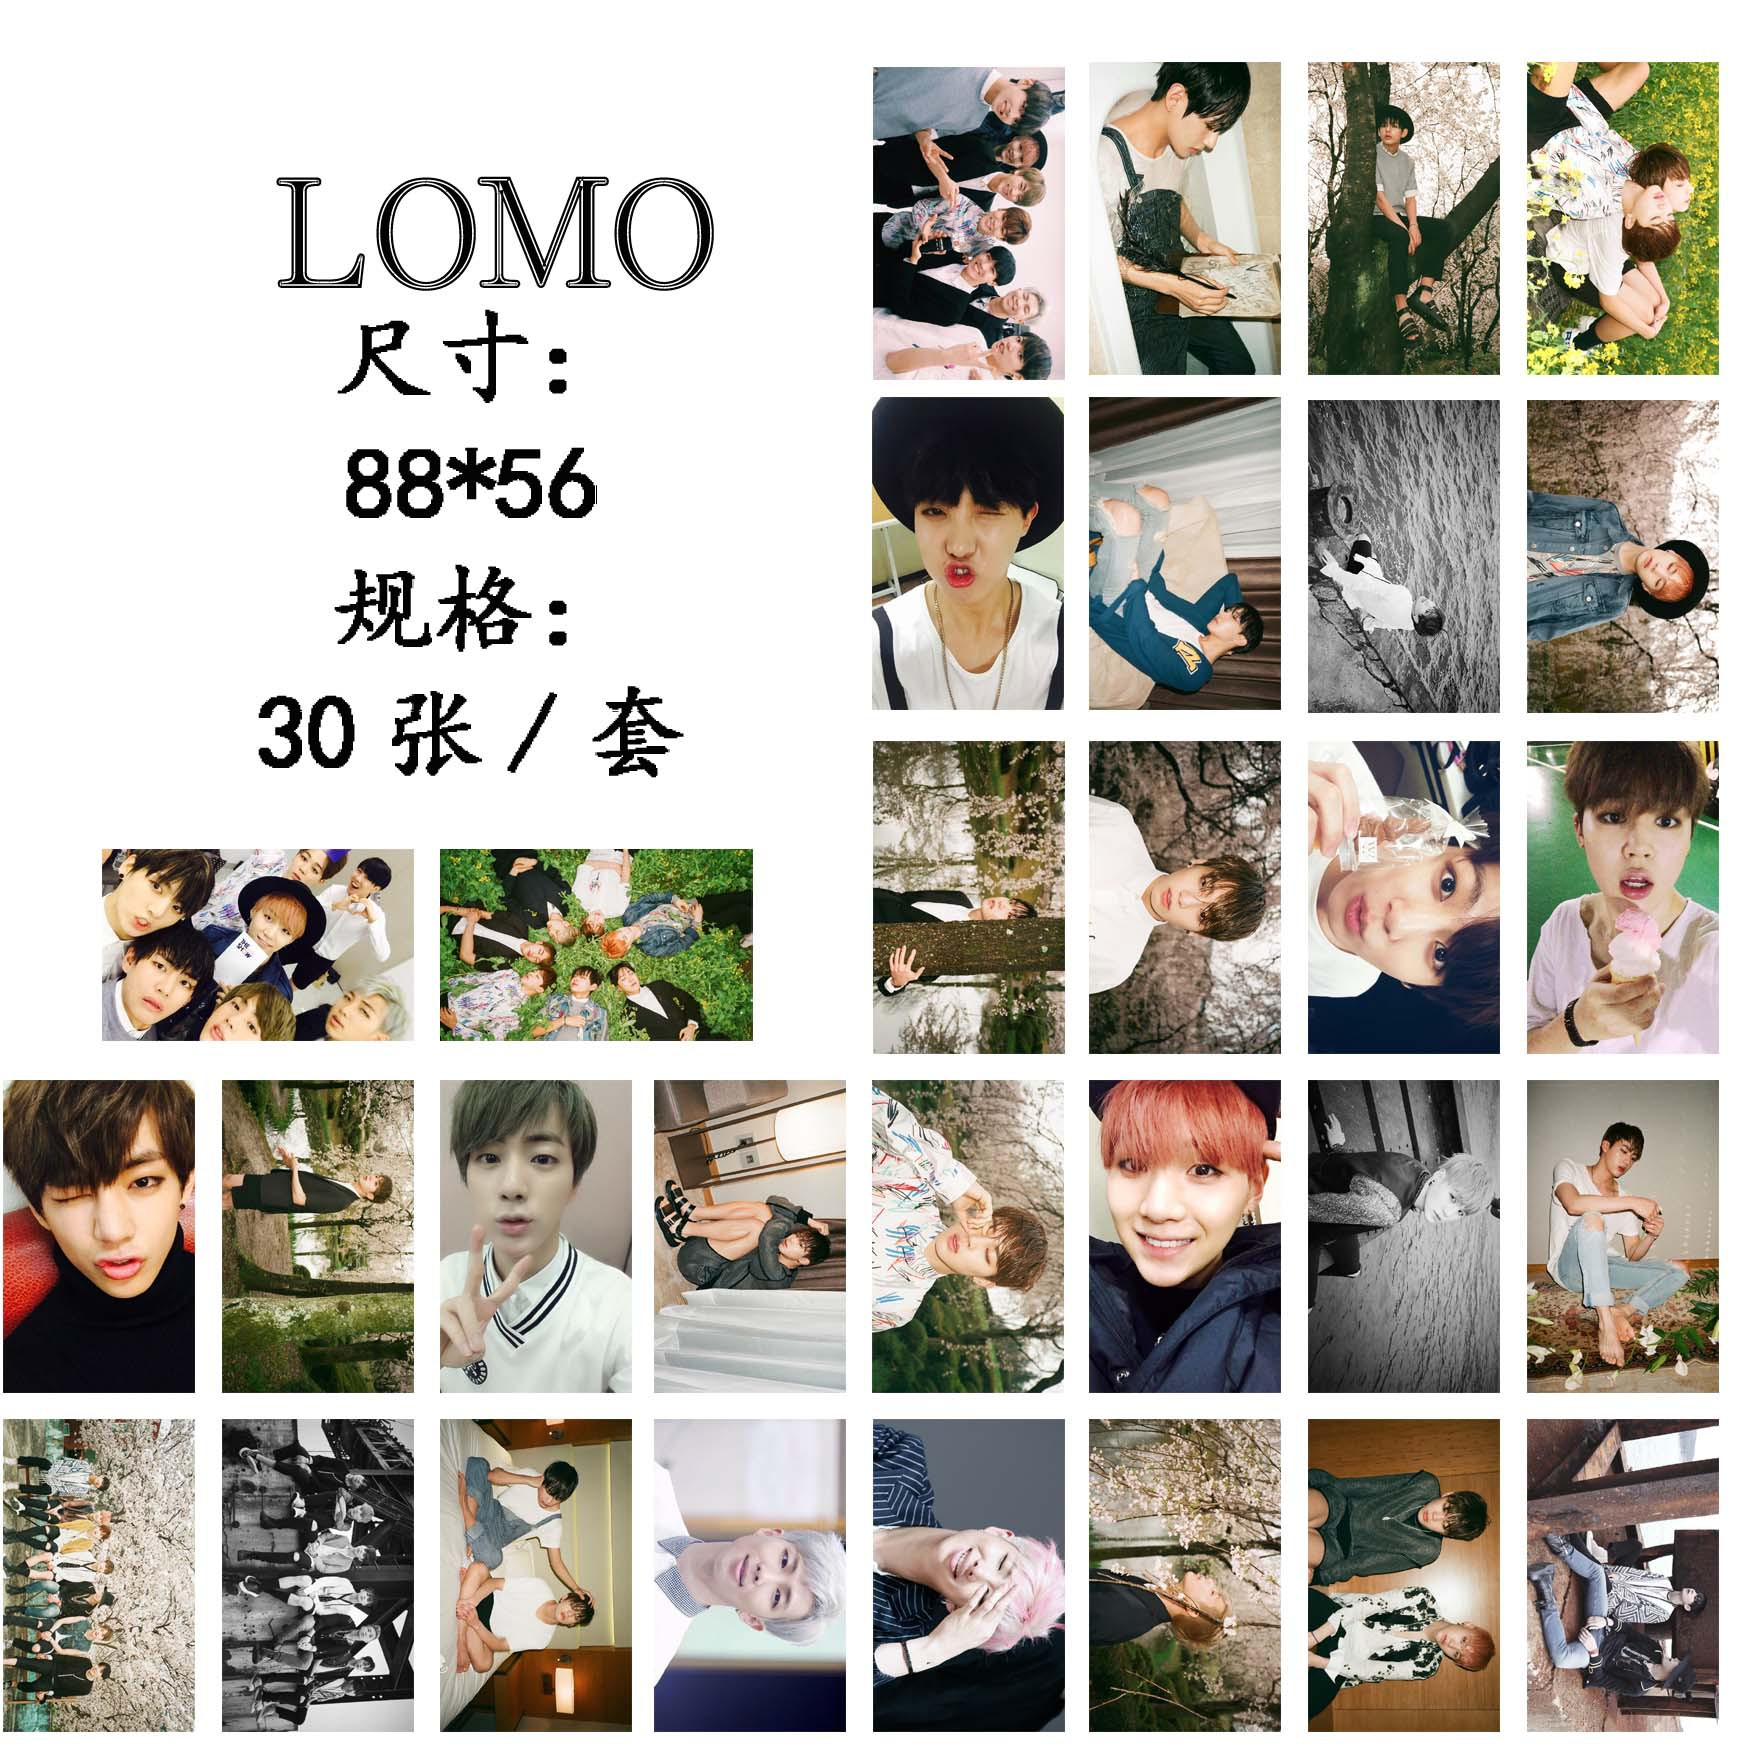 [MYKPOP]BTS Bangtan Boys The Most Beautiful Moment in Life Album LOMO Cards Paper Photo Cards HD Photocard Jung Kook SA18022804